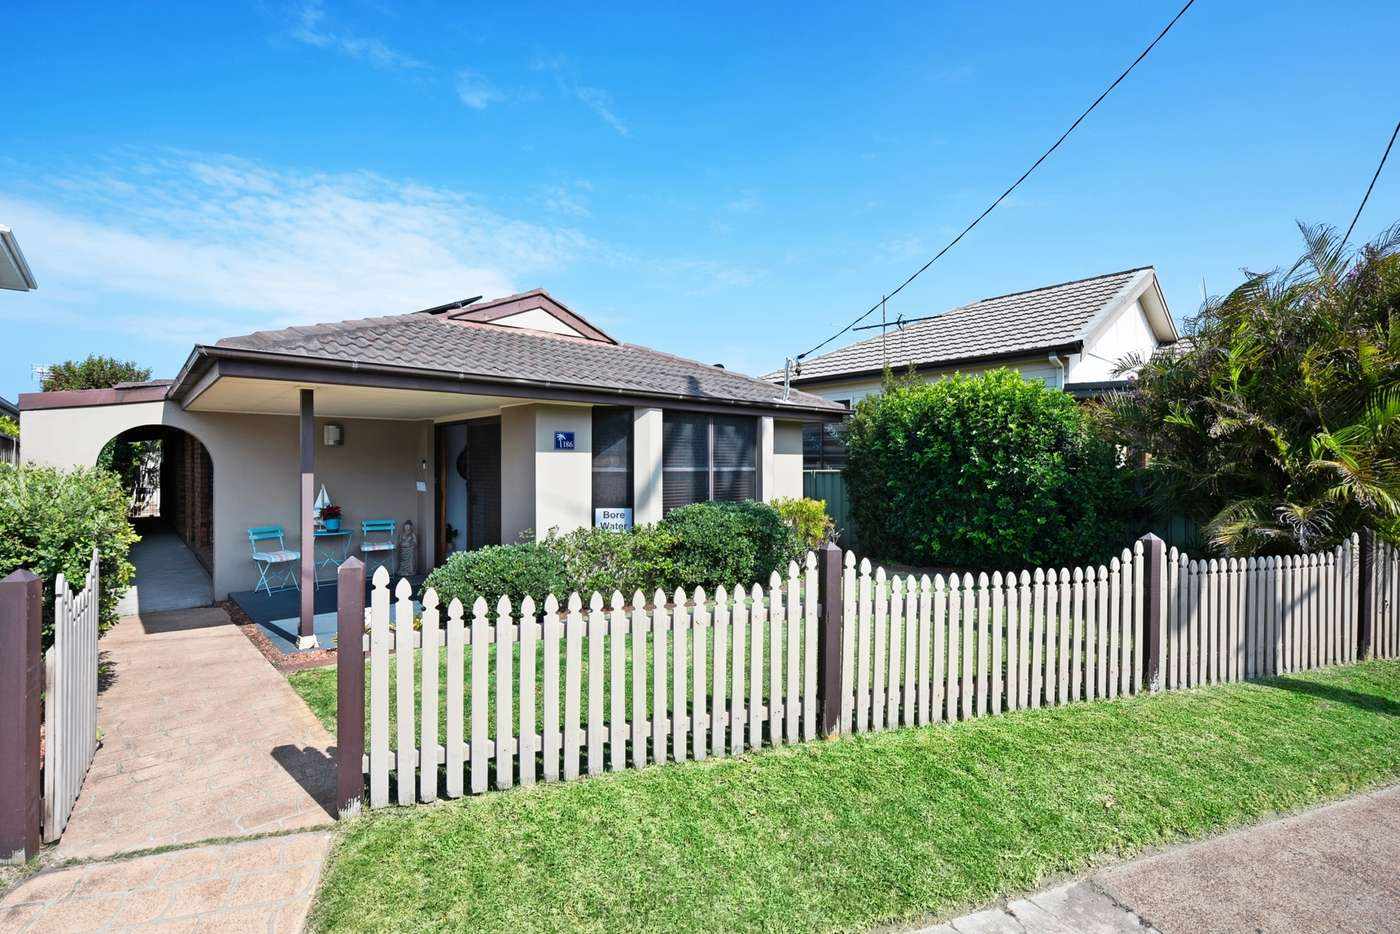 Main view of Homely house listing, 186 Fullerton Street, Stockton NSW 2295